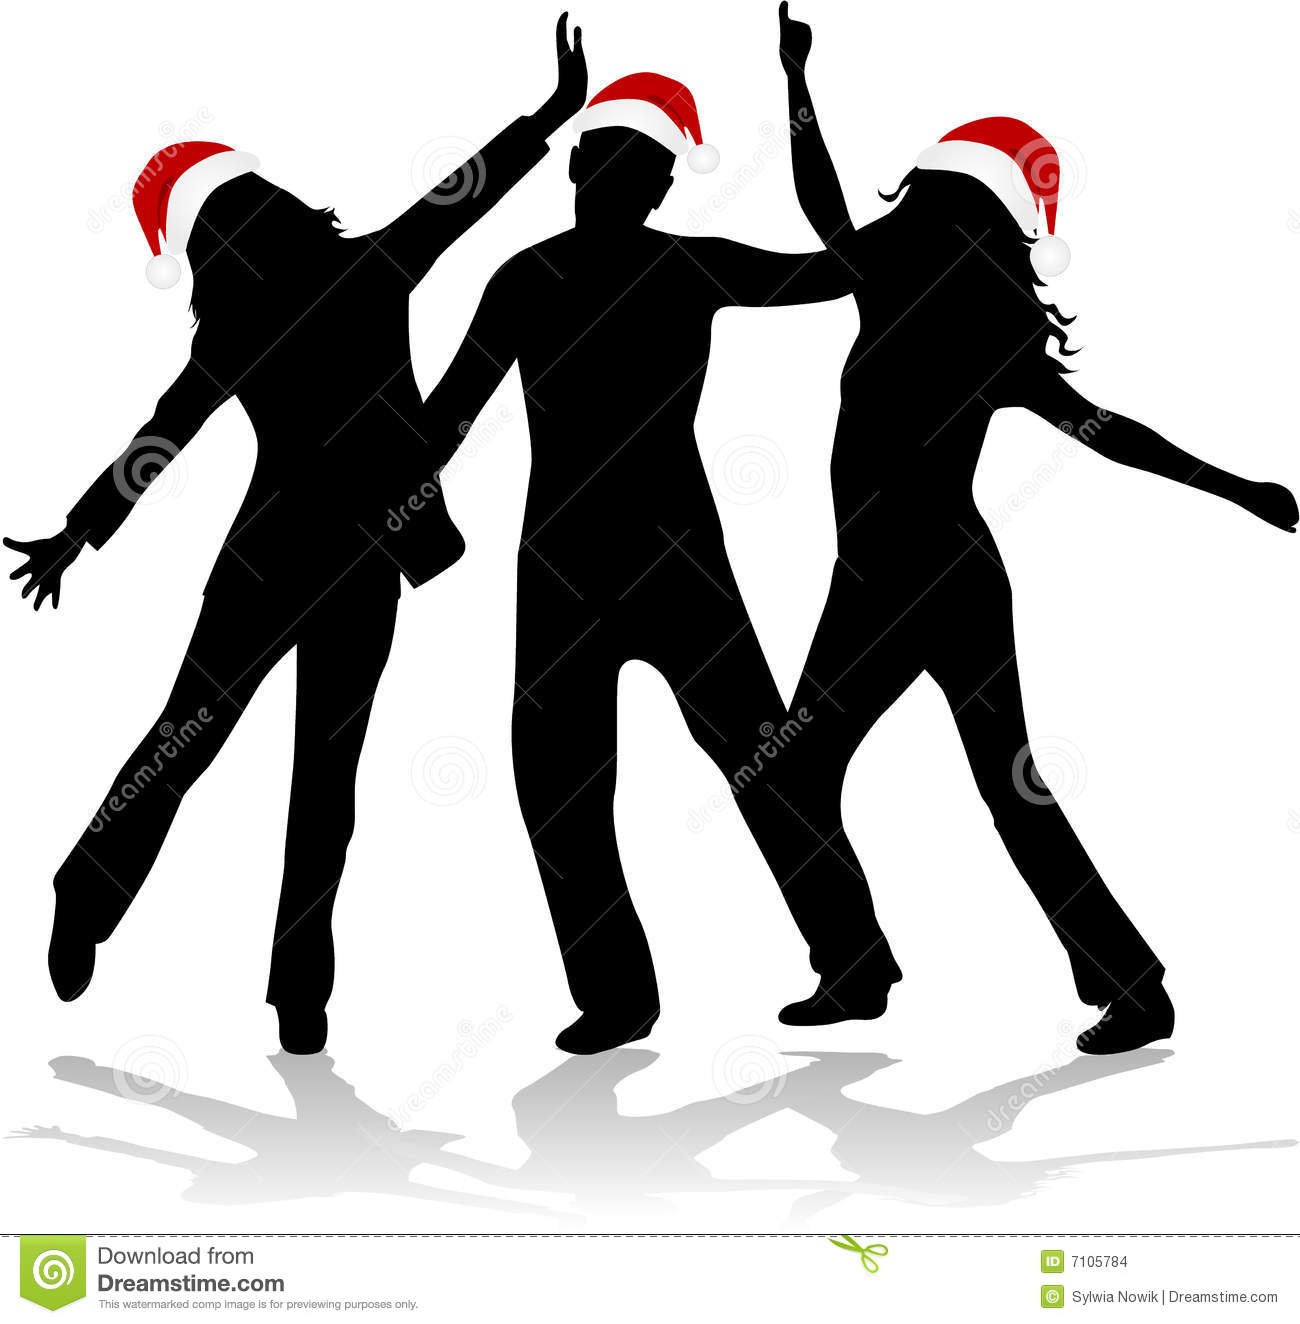 Christmas Time - Dancing Silhouettes Stock Images - Image: 7105784